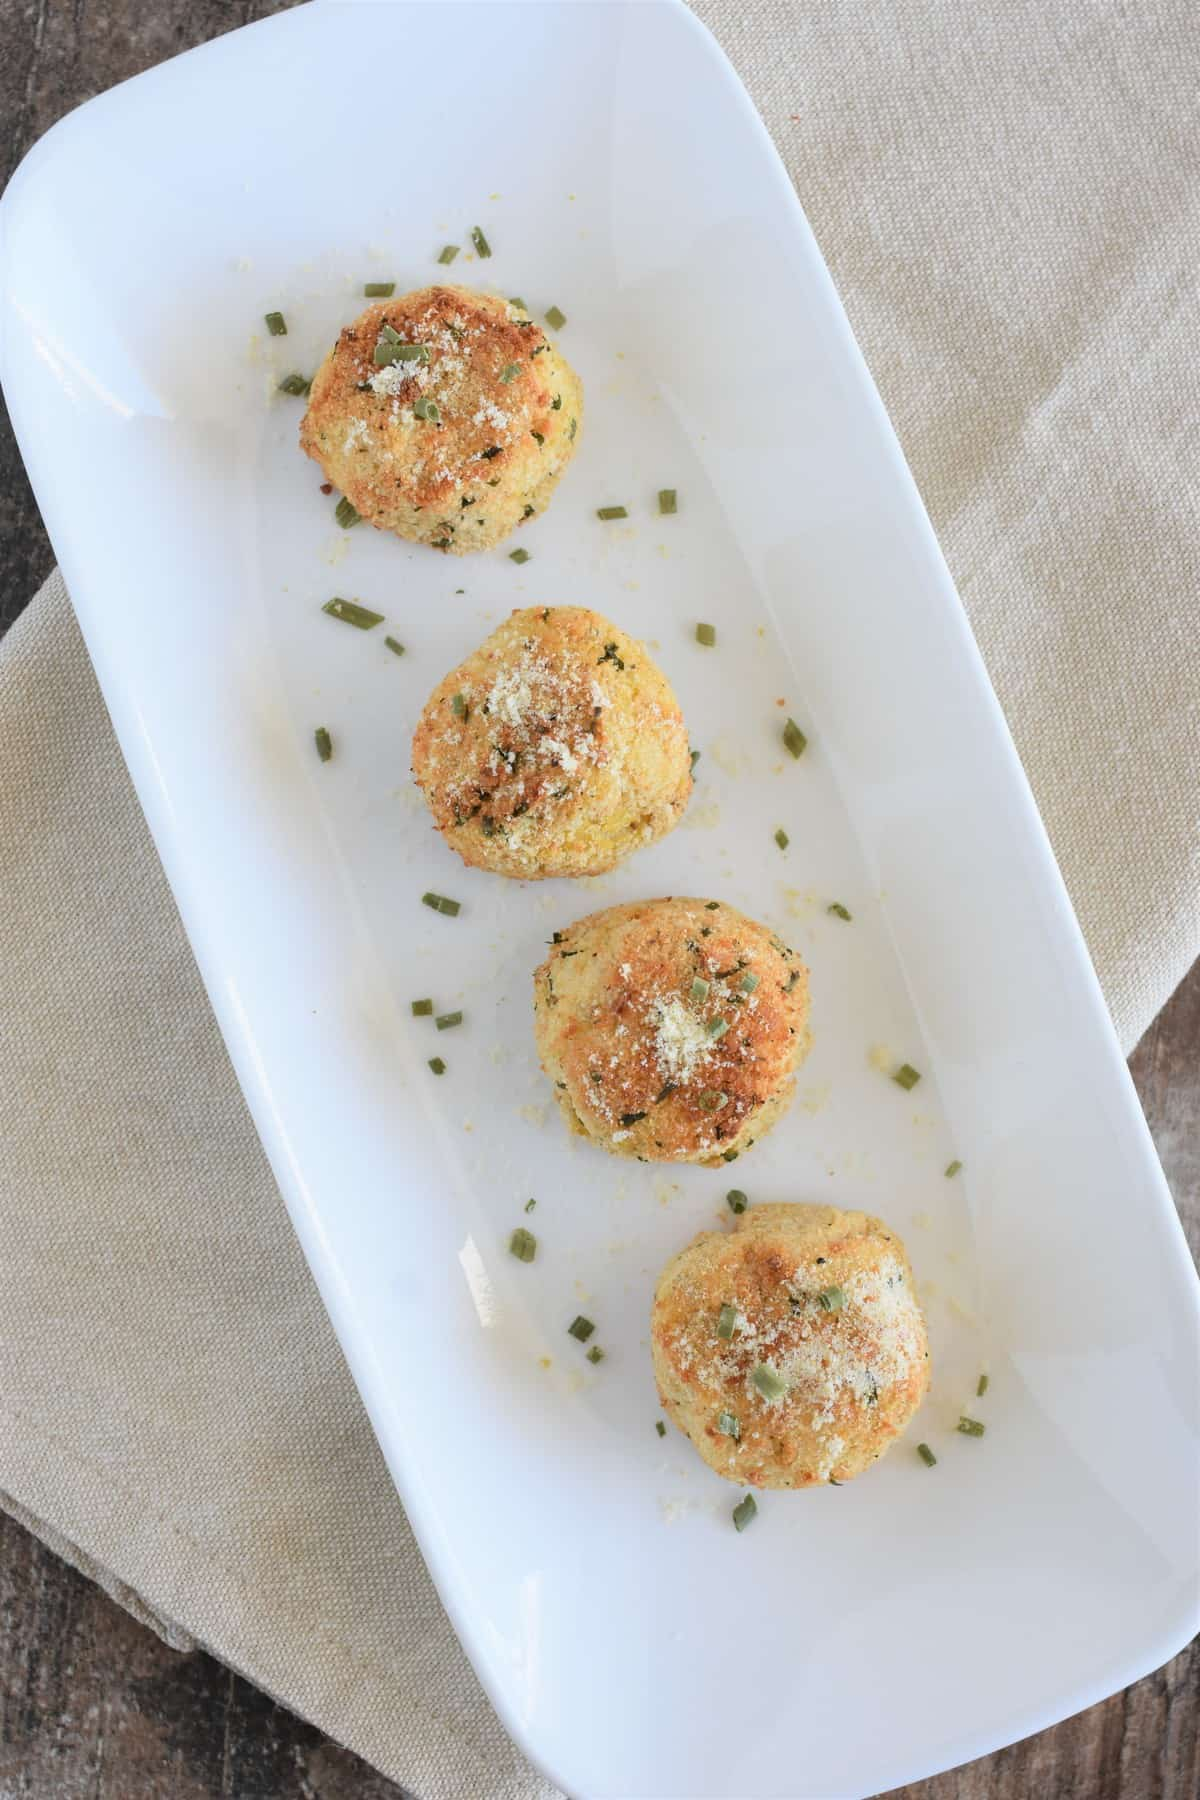 Overhead shot of potato balls on white serving dish garnished with vegan Parmesan and chives